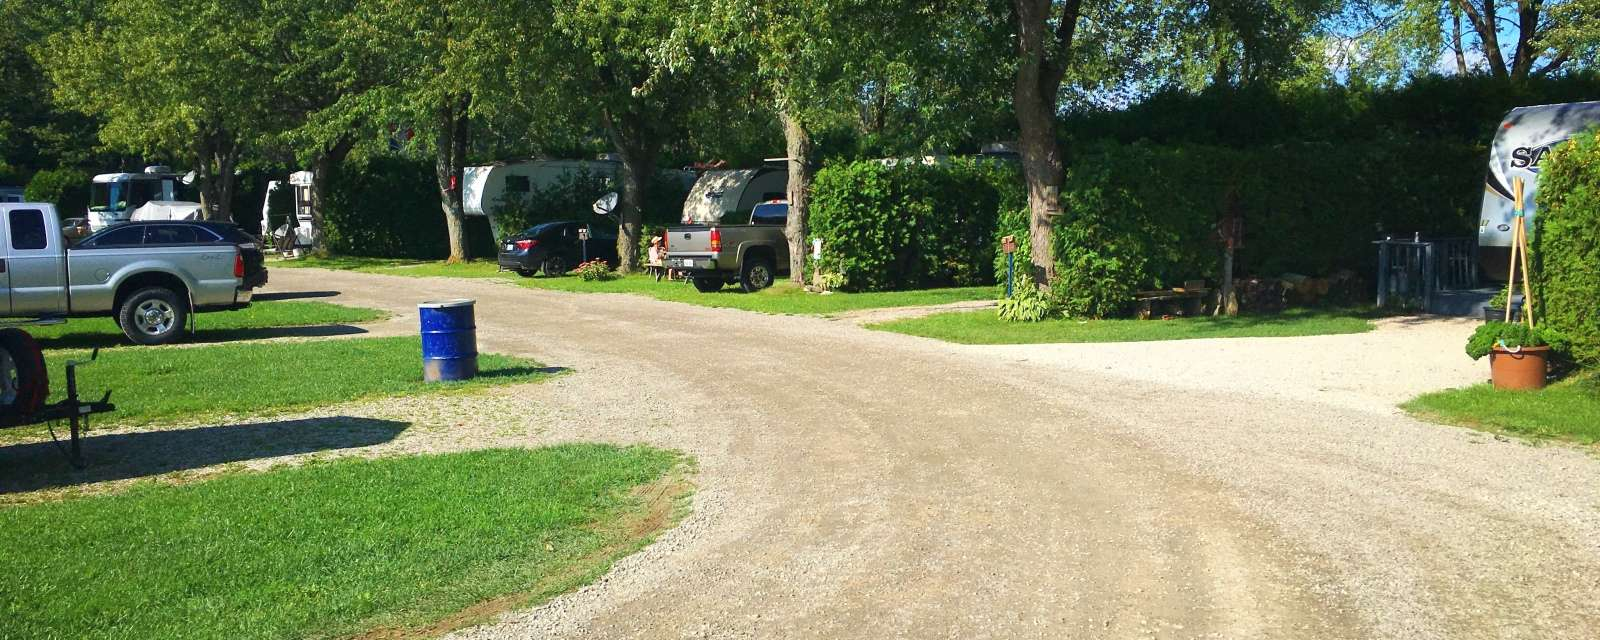 Wiarton - Campgrounds & Trailer Parks